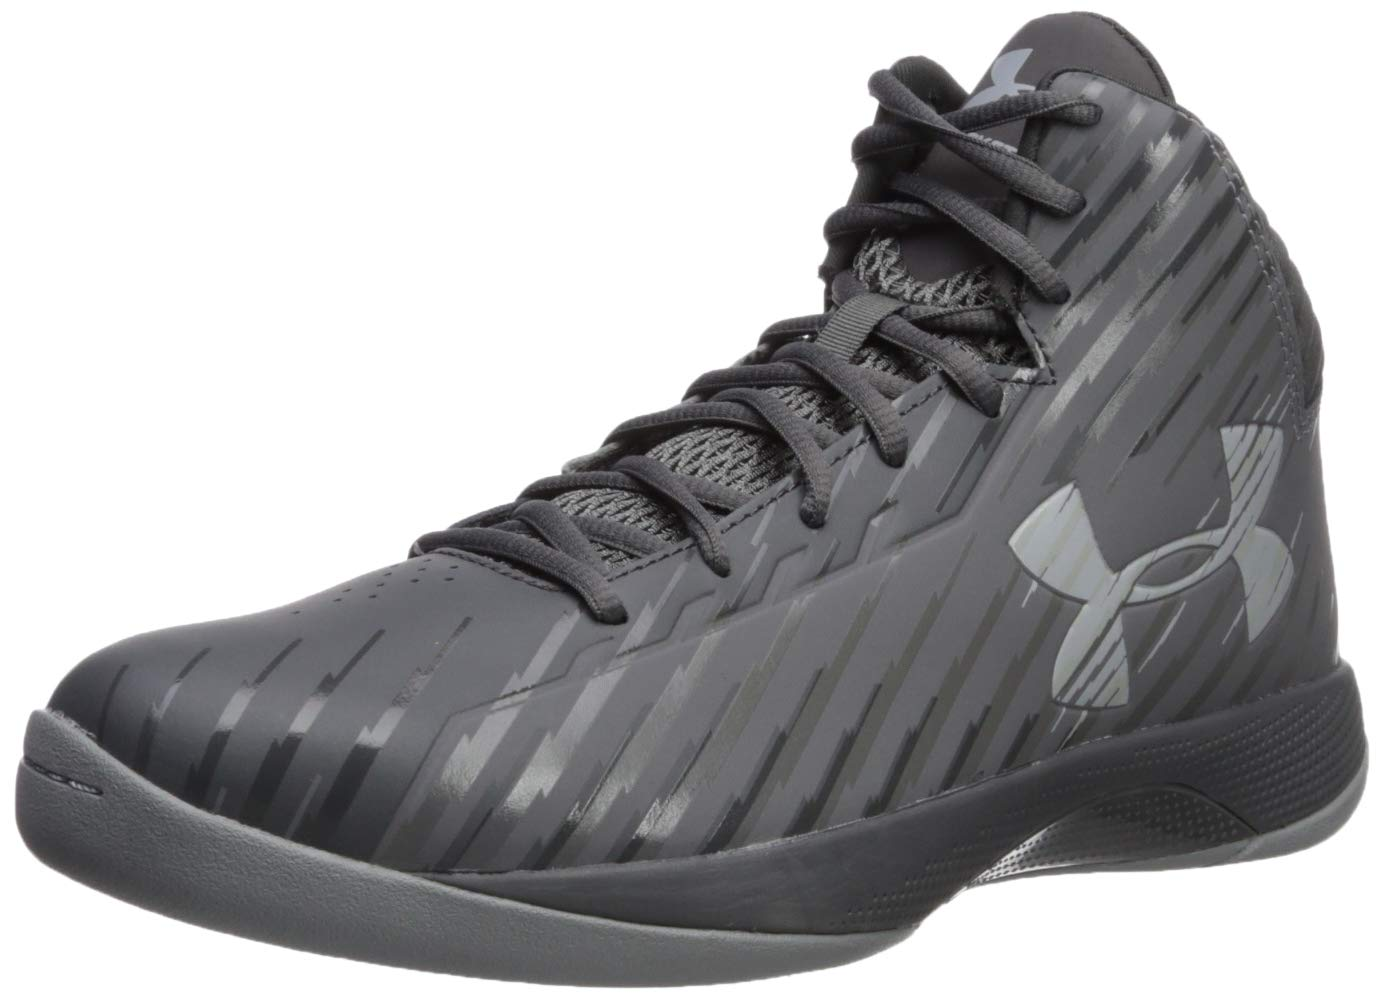 8509b50d7426 Under Armour Men s Jet Mid Basketball Shoe Black Steel White product image